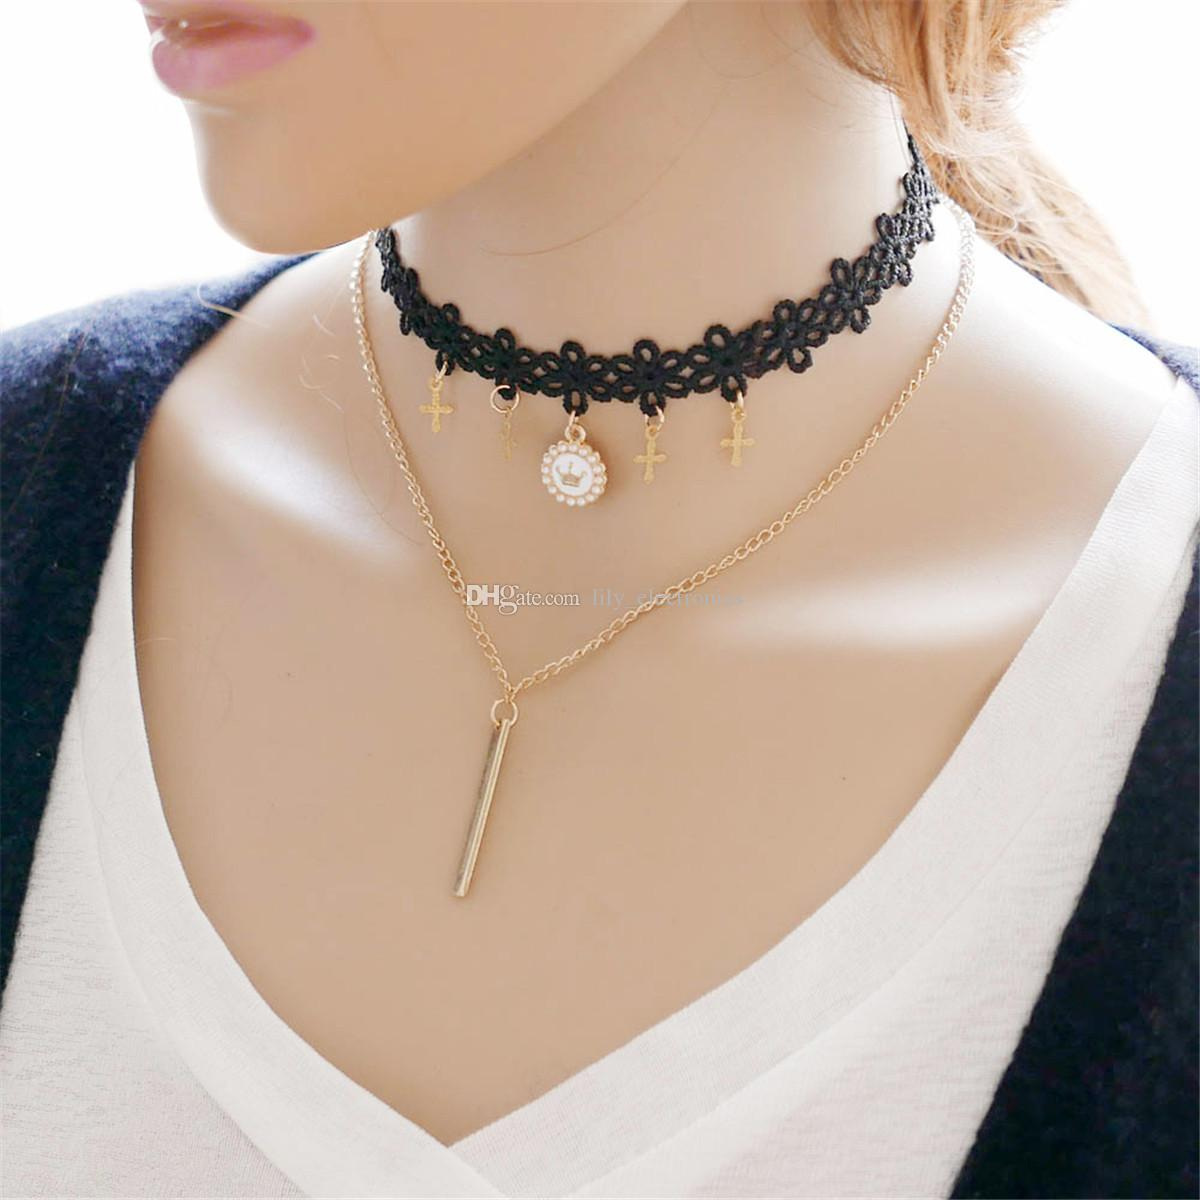 Black Gothic Collar Lace Cross Pendant Necklace Multilayer Alloy Y Chain Chock Jewelry For Women Pack of